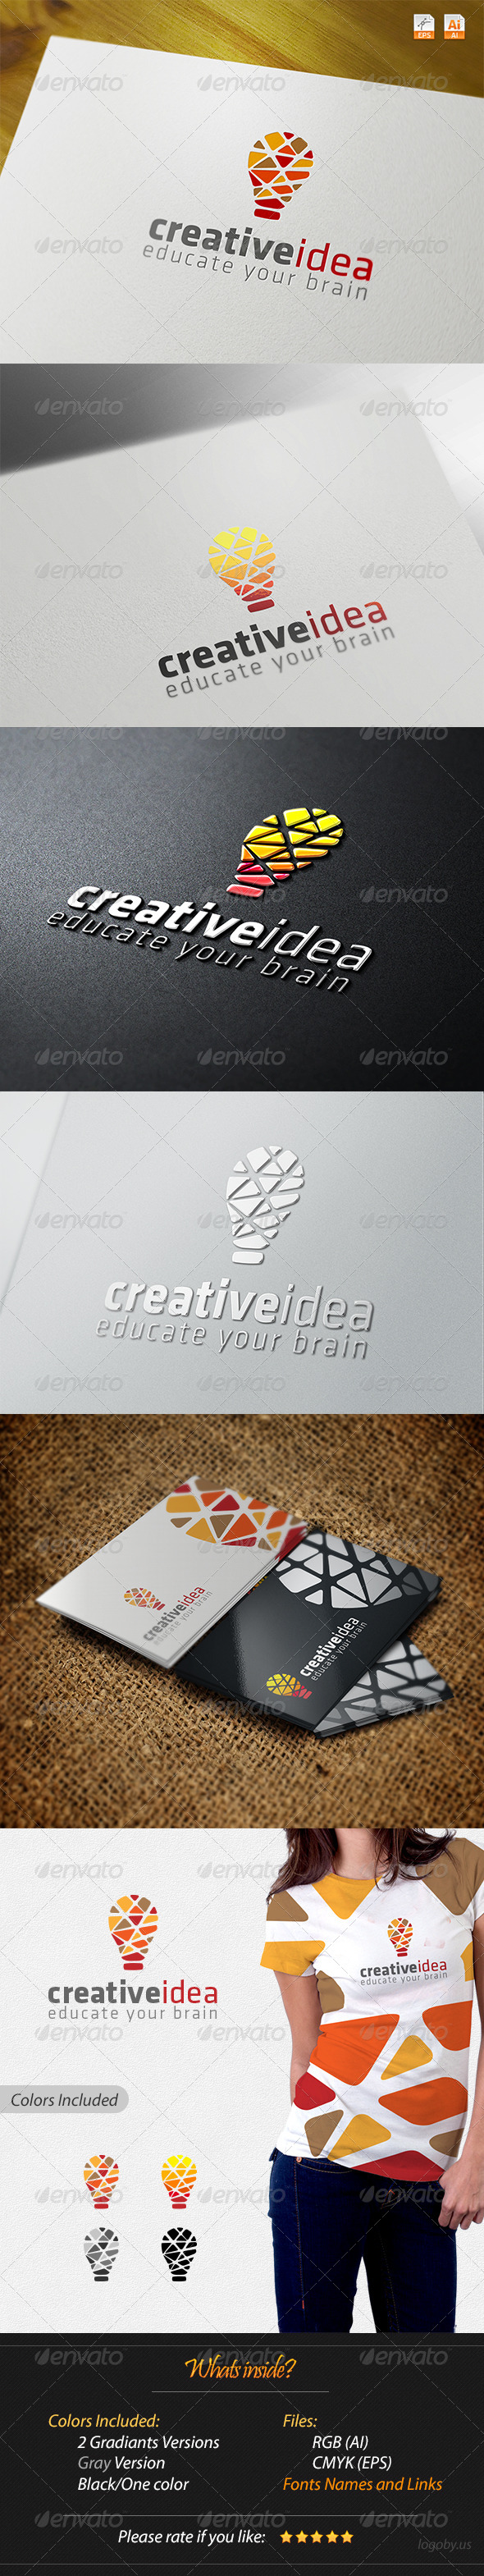 Creative Idea - Educate Your Brain - Abstract Logo Templates